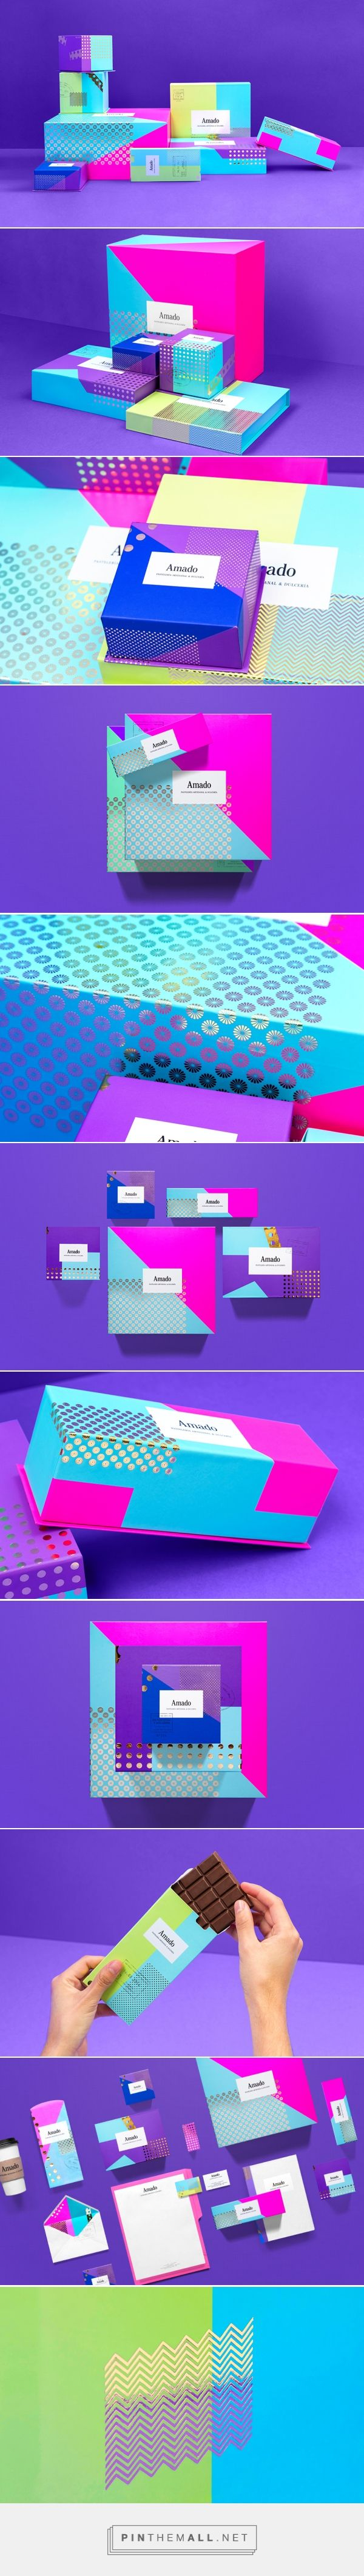 Amado bakery and candy boutique by Anagrama. special thanks to team member Jeny Mihailova for alerting me to this stellar #packaging PD